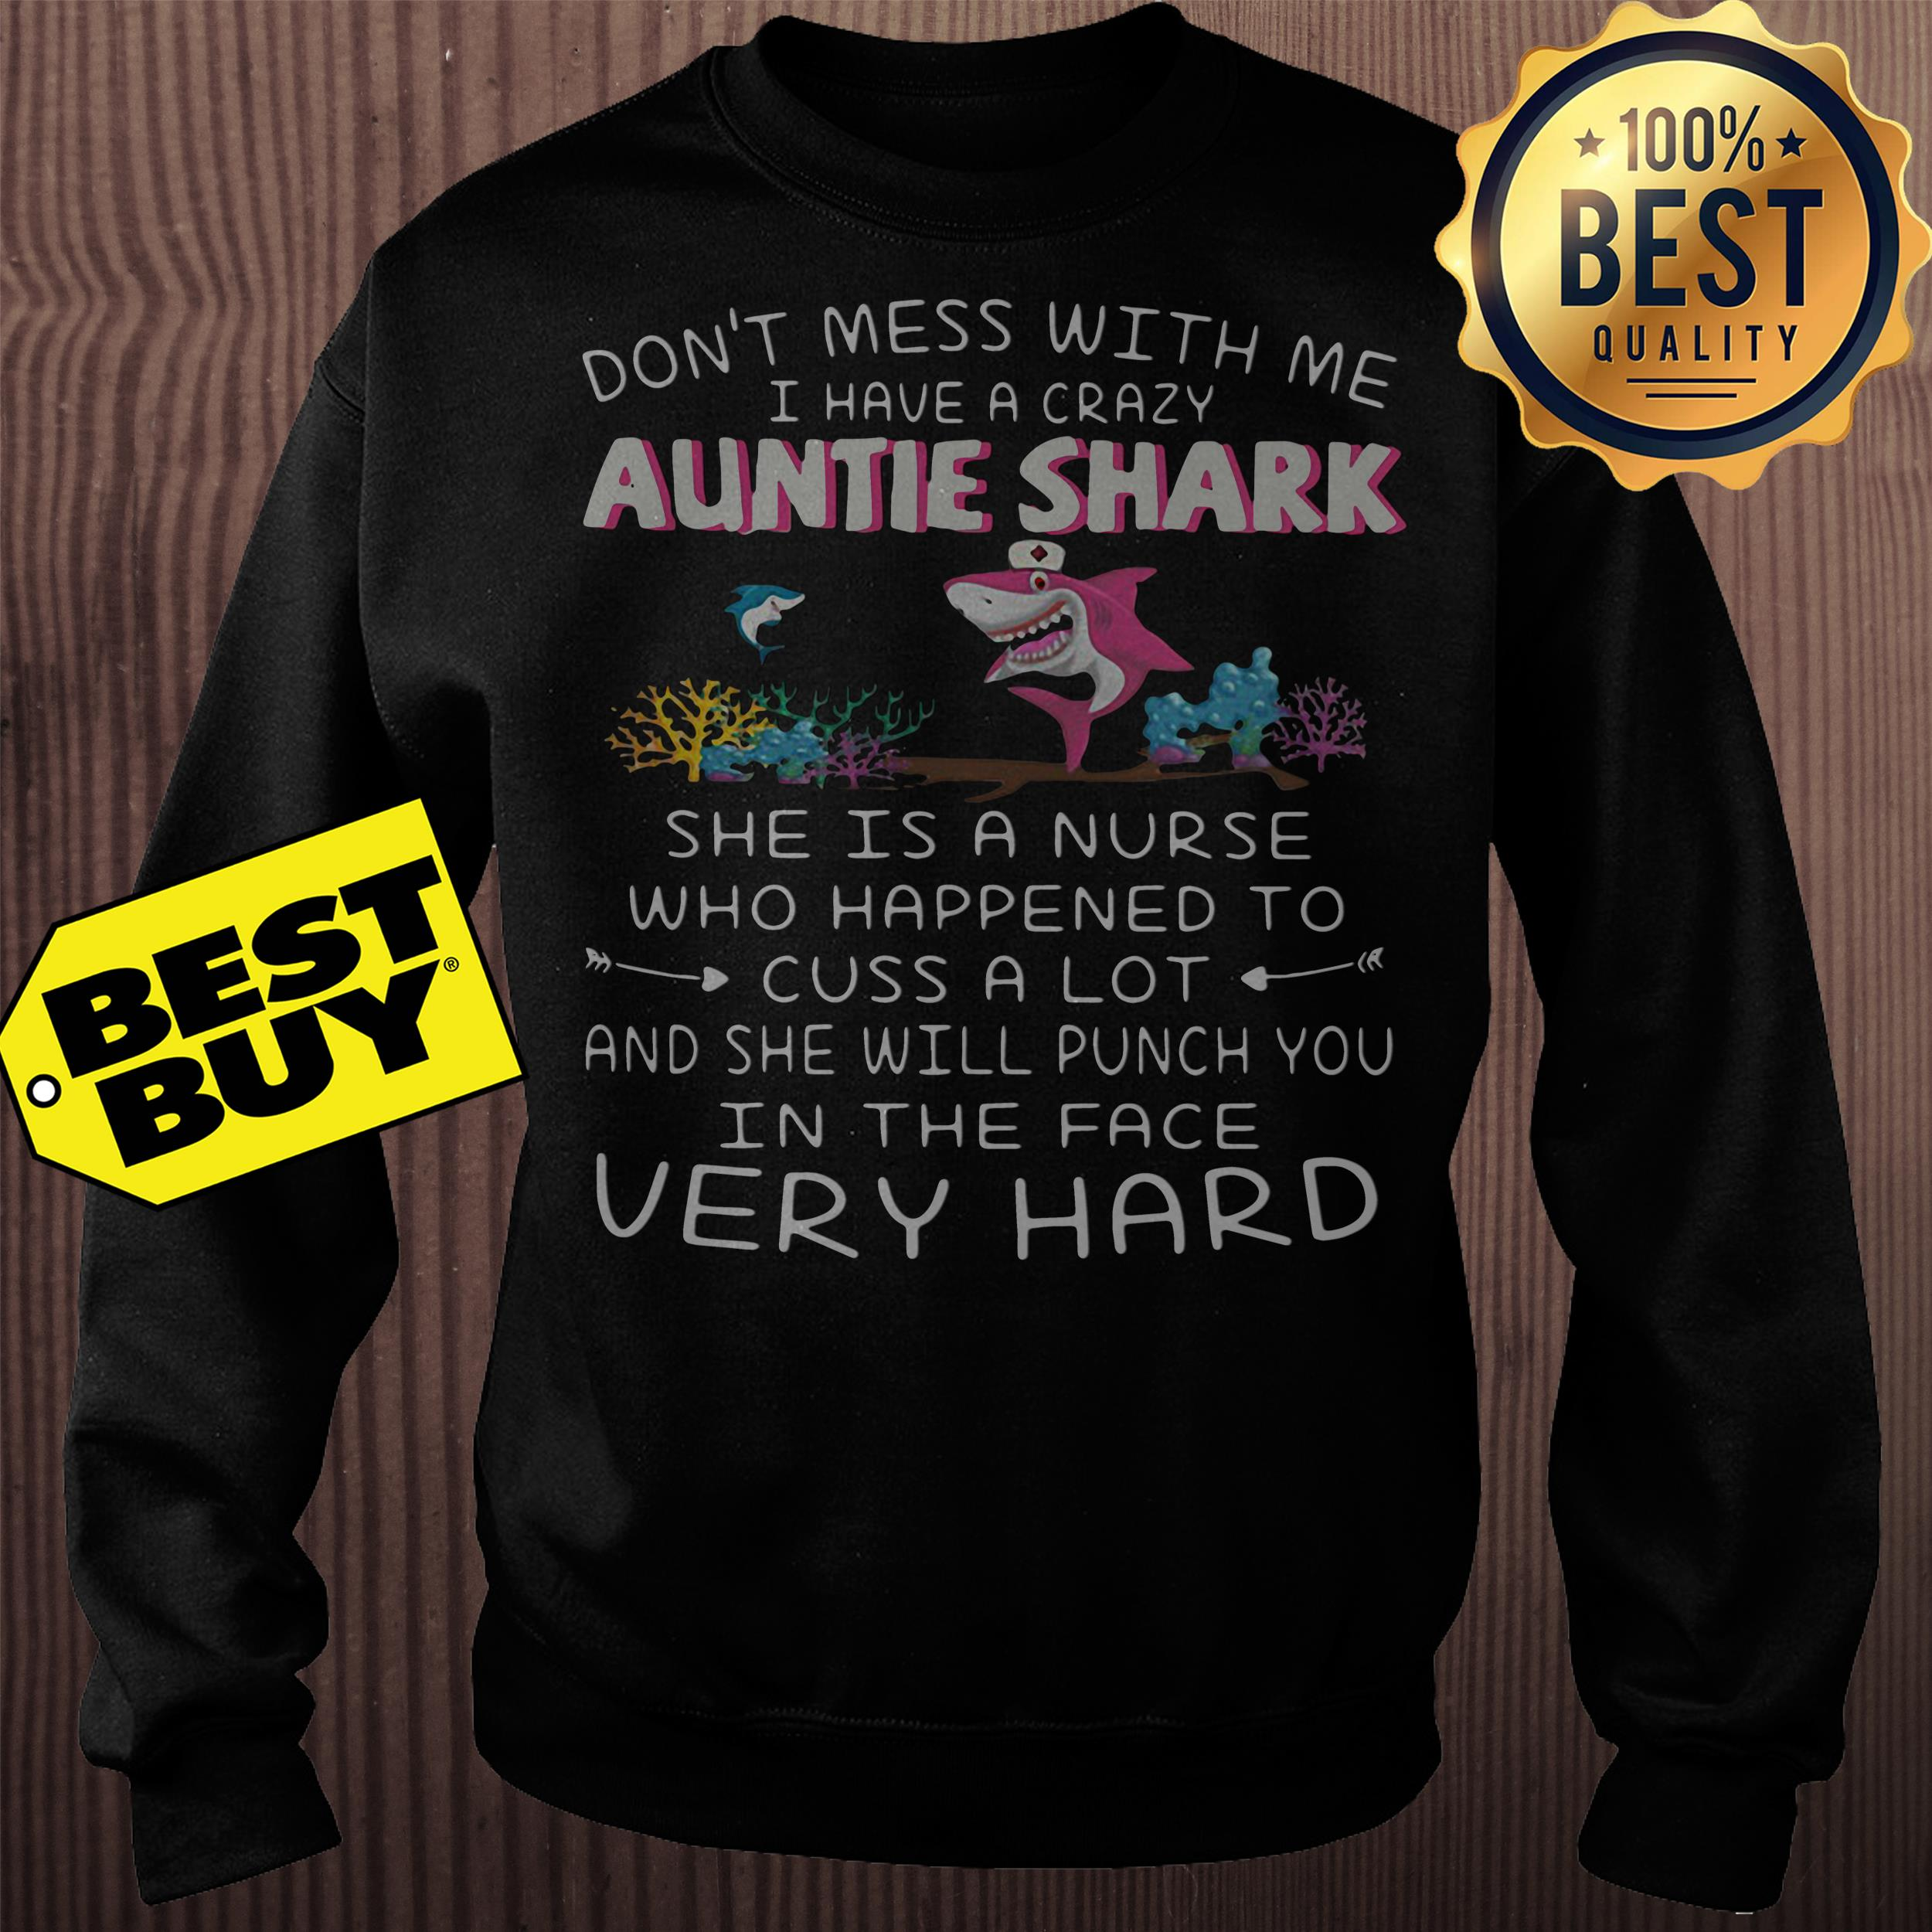 Don't mess with me I have a crazy auntie shark she is a nurse sweatshirt